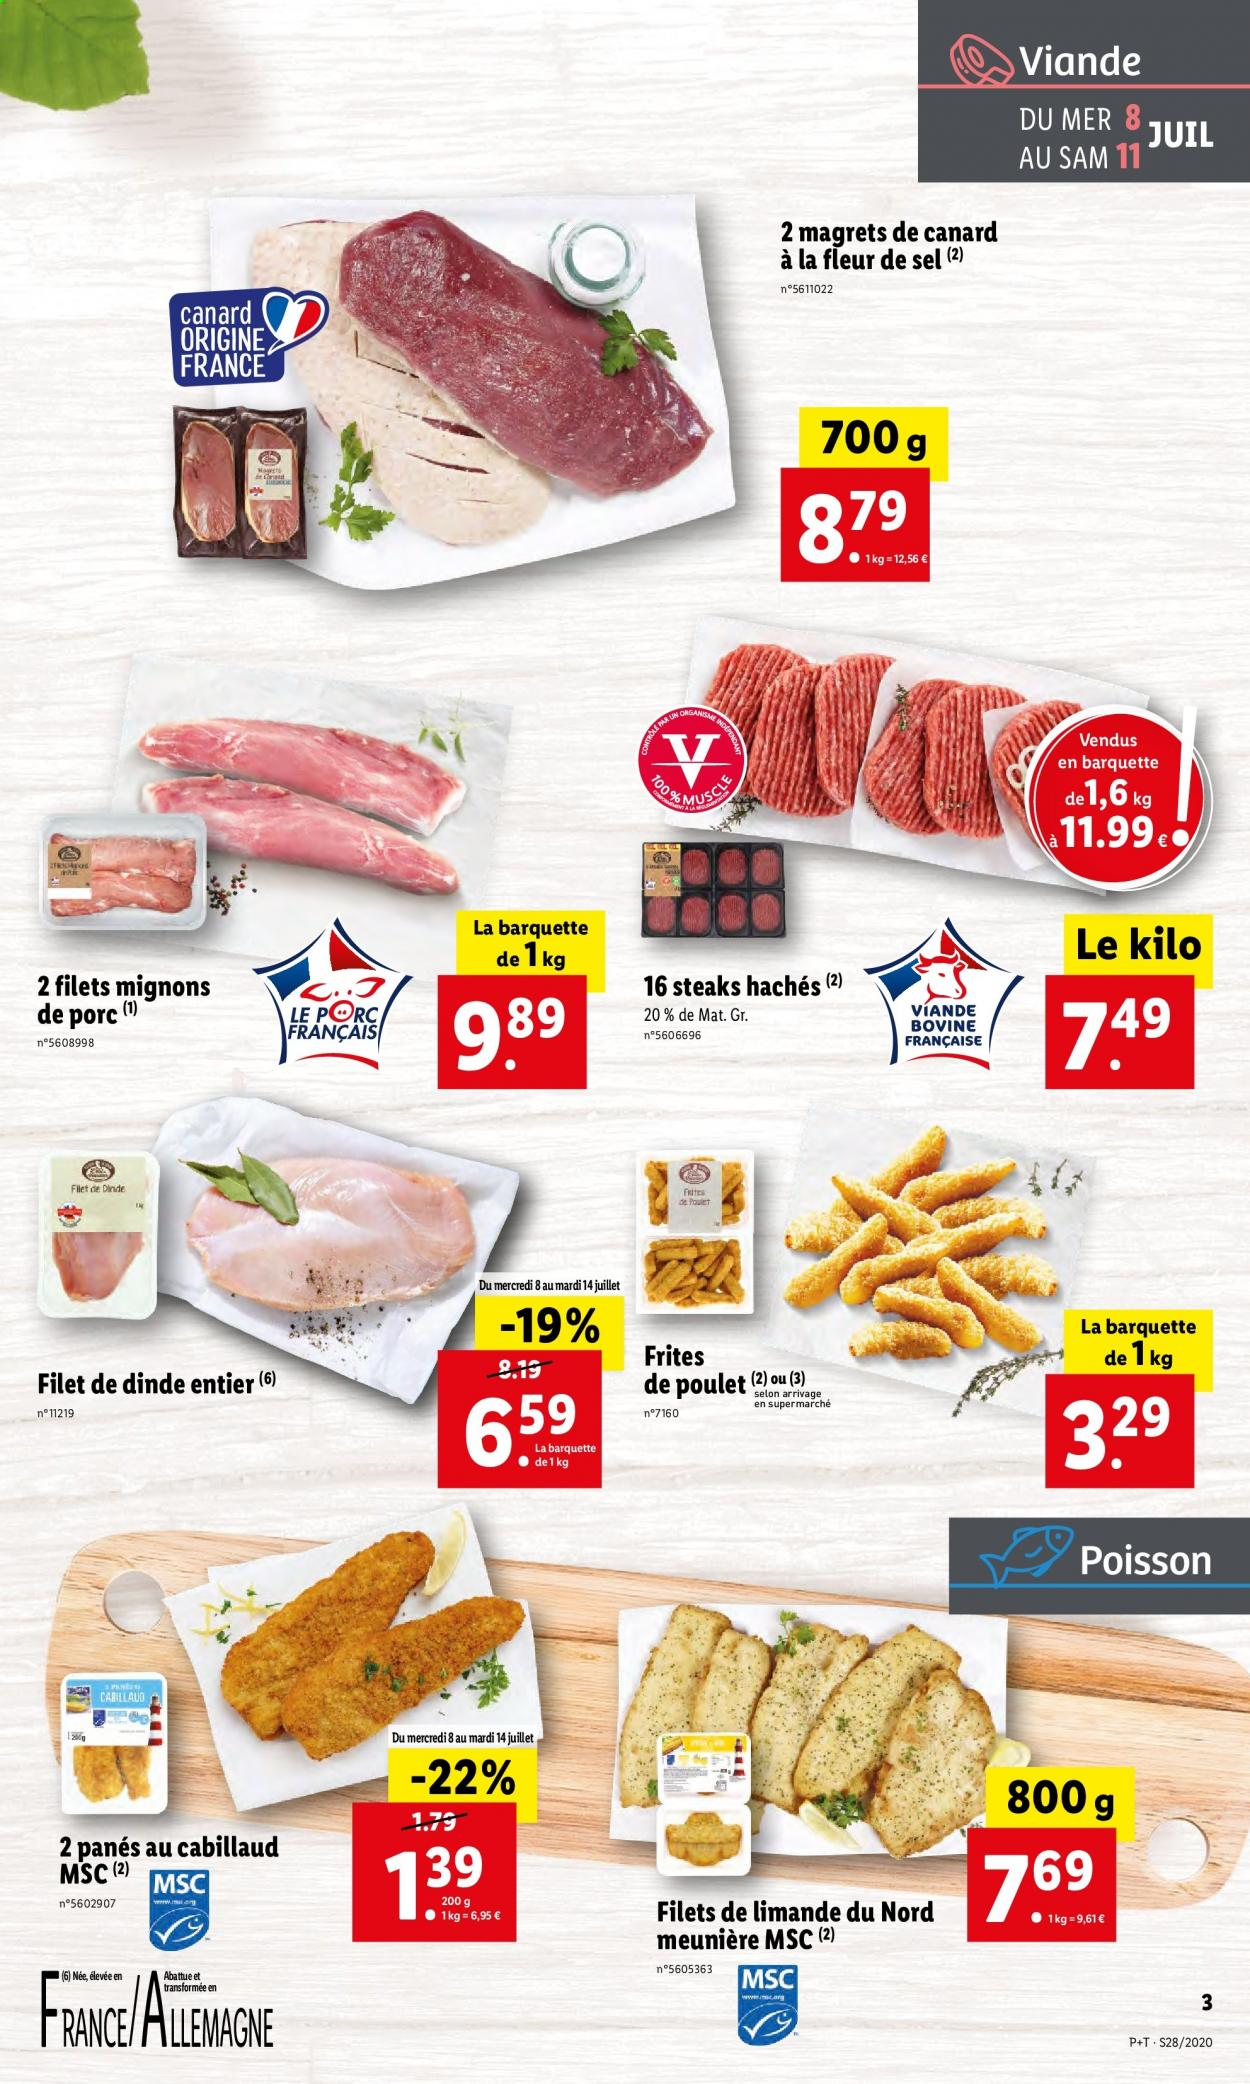 Catalogue Lidl - 08.07.2020 - 14.07.2020. Page 3.